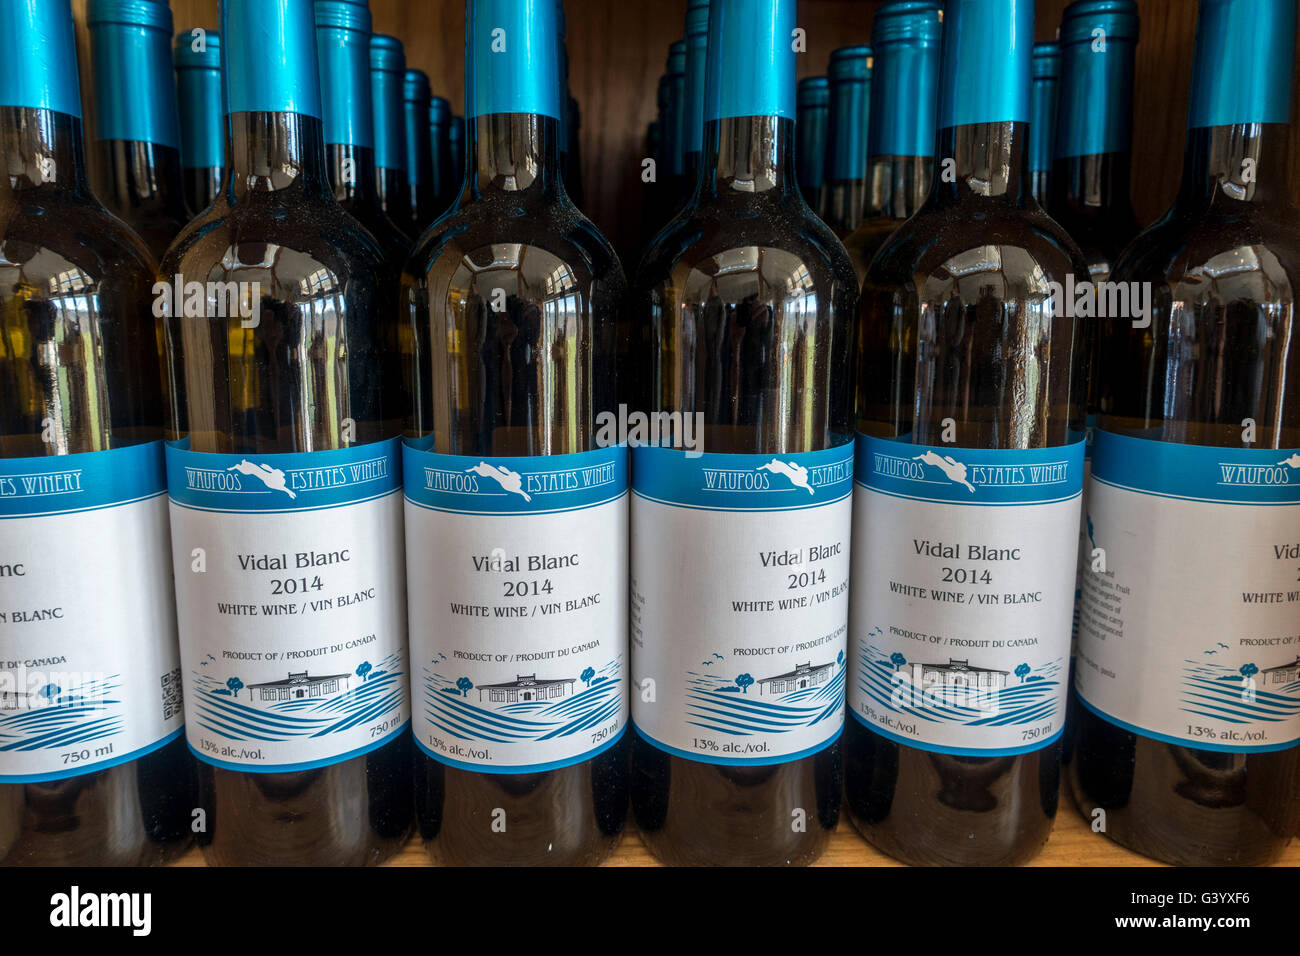 Waupoos Winery Vidal Blanc Wine Bottles For Sale On A Shelf, Waupoos Winery Is In Prince Edward County Ontario Canada - Stock Image